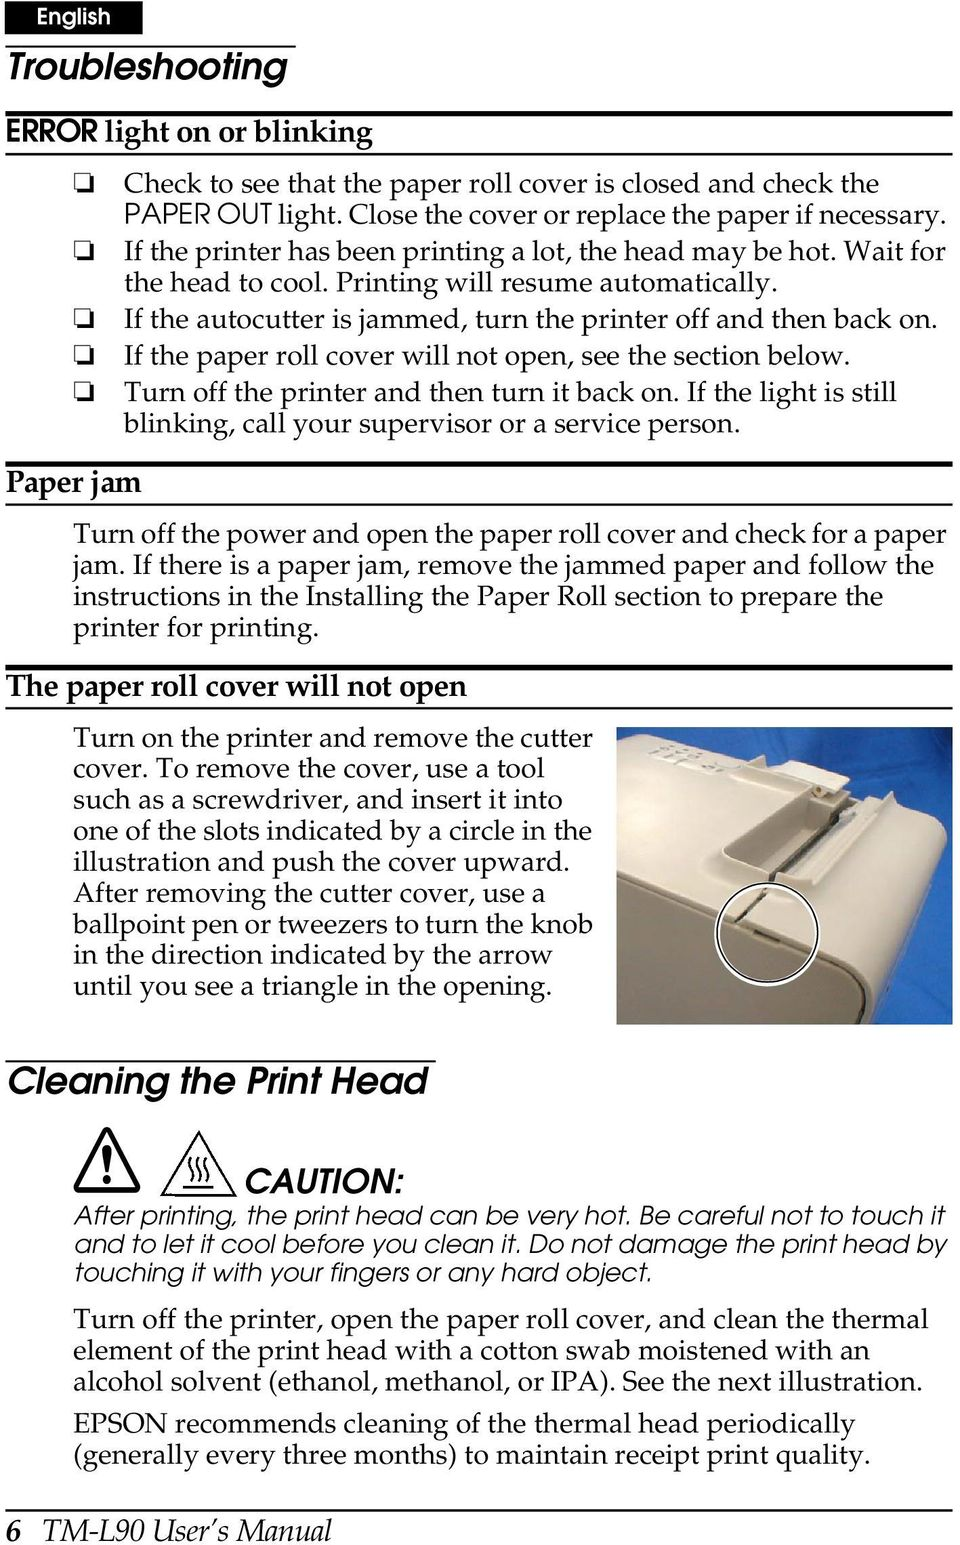 If the paper roll cover will not open, see the section below. Turn off the printer and then turn it back on. If the light is still blinking, call your supervisor or a service person.